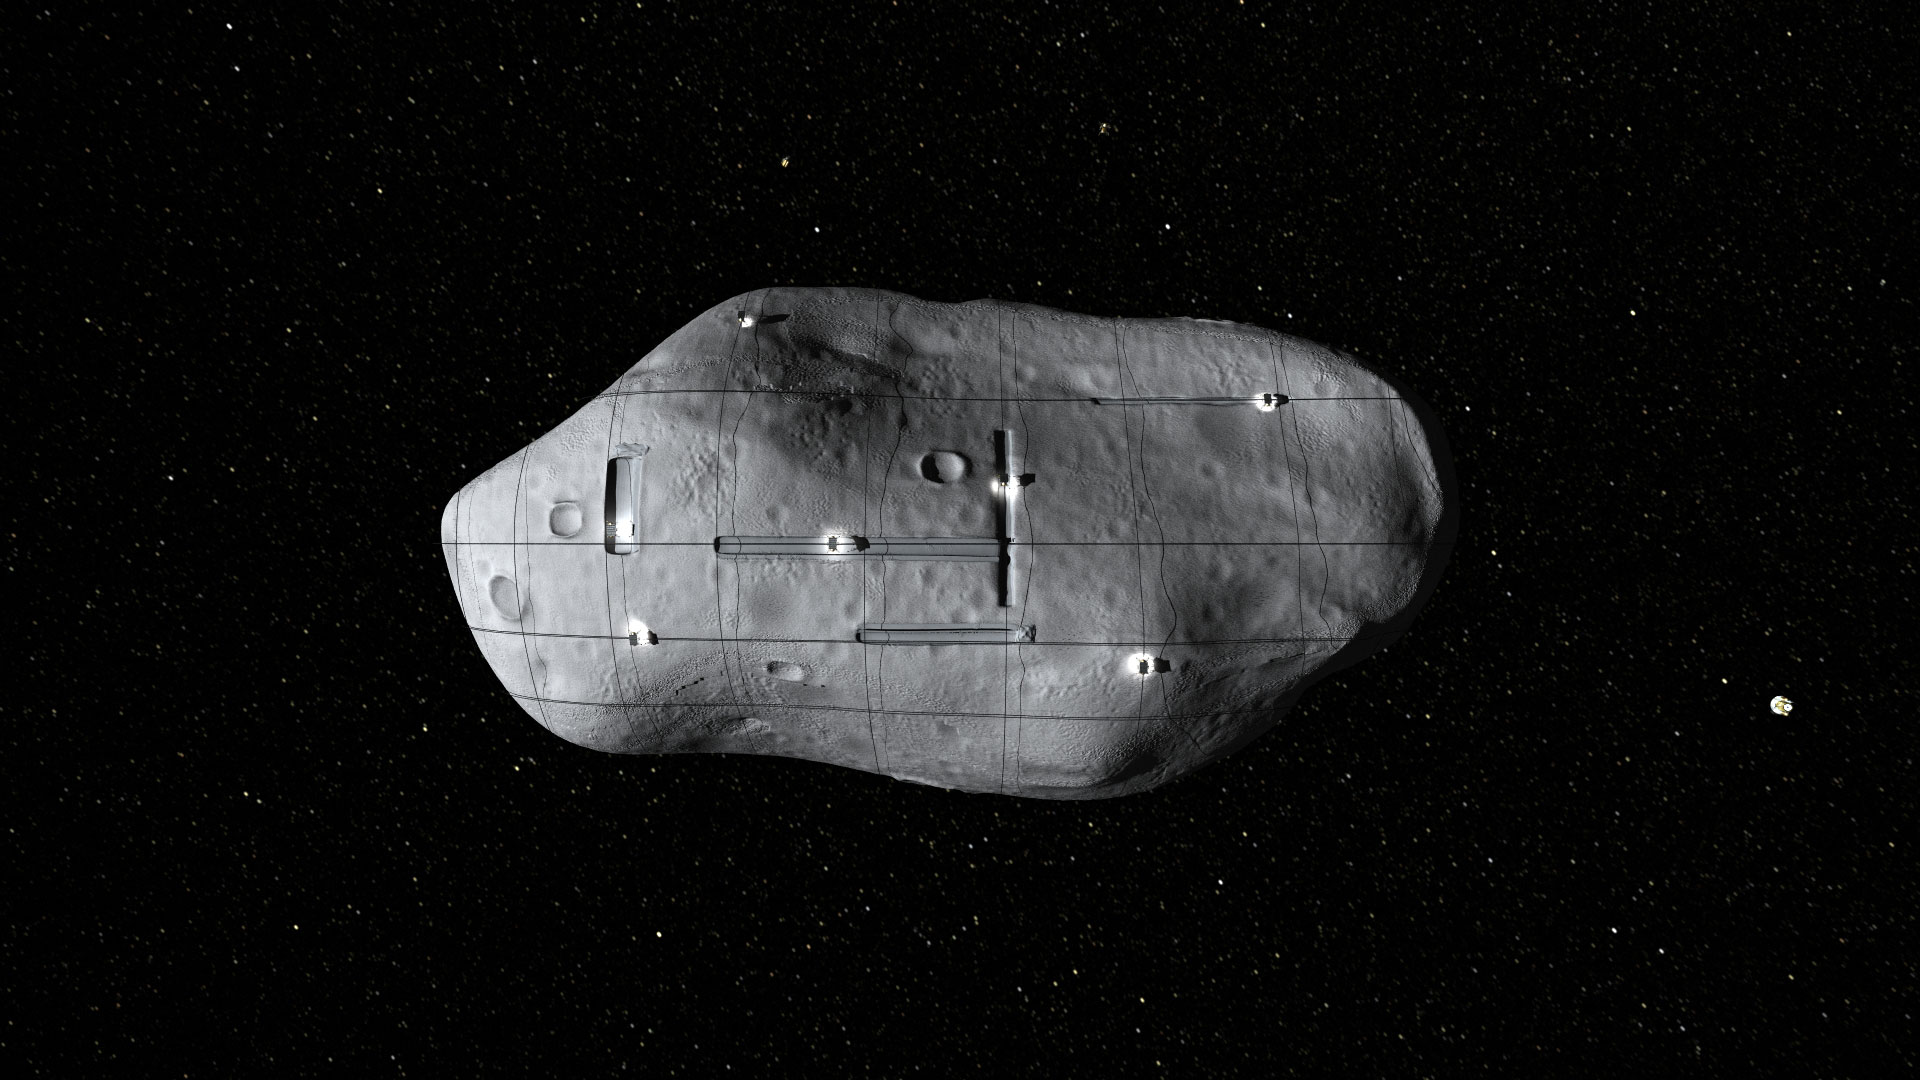 asteroid with building on it - photo #24